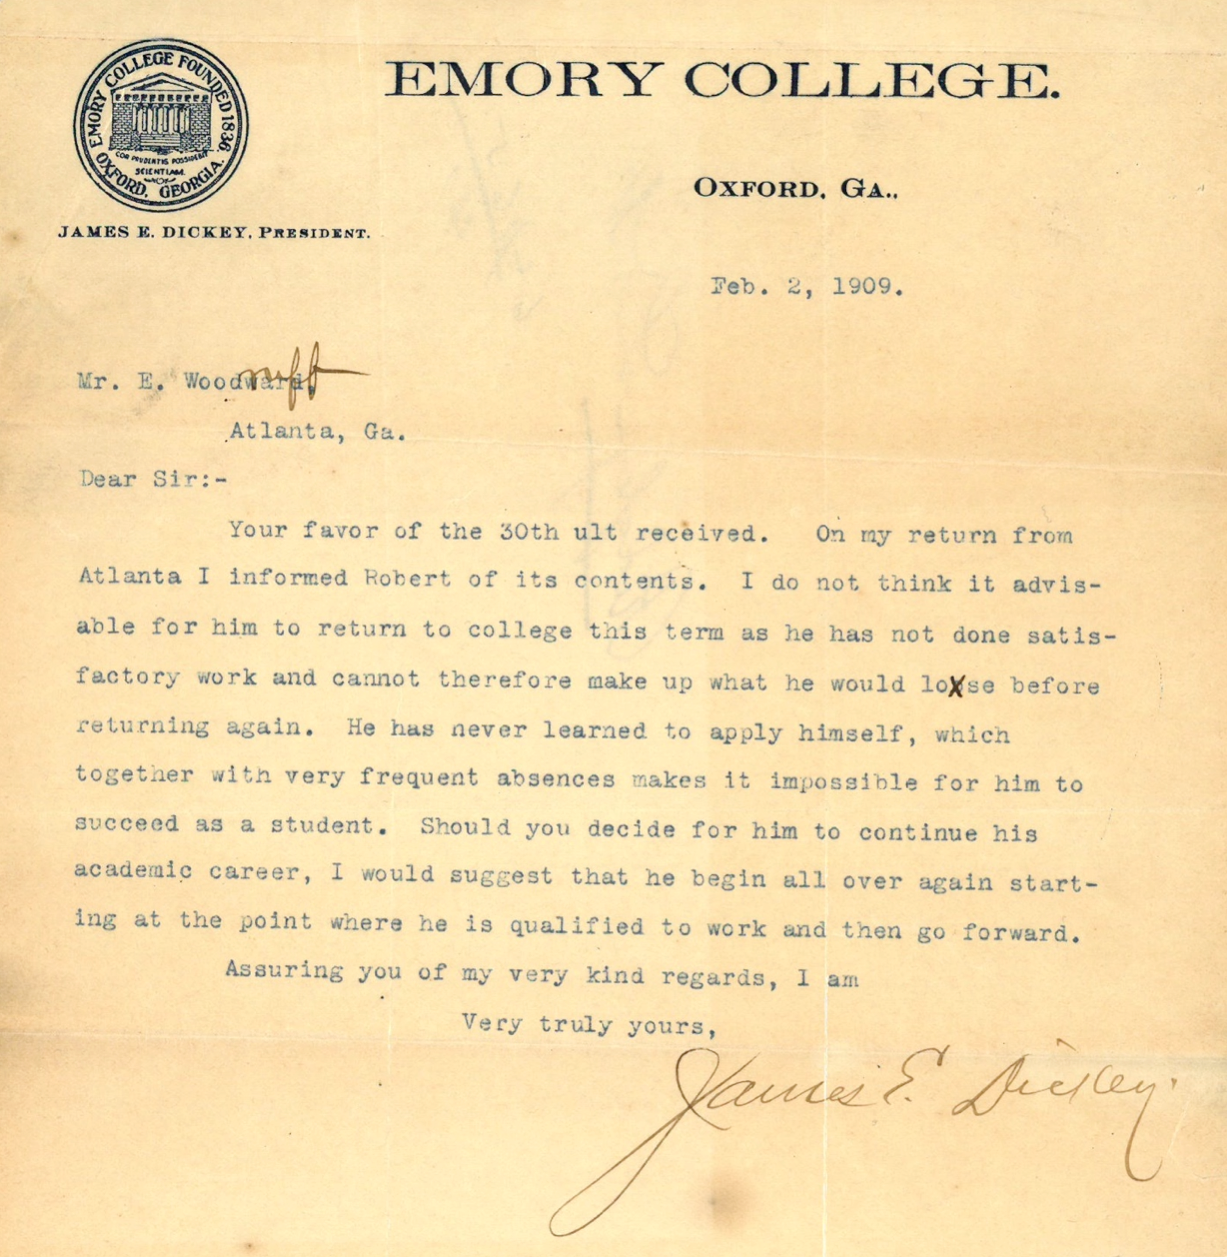 Two Woodruff Letters Seven Decades Apart  Emory HistorianS Blog